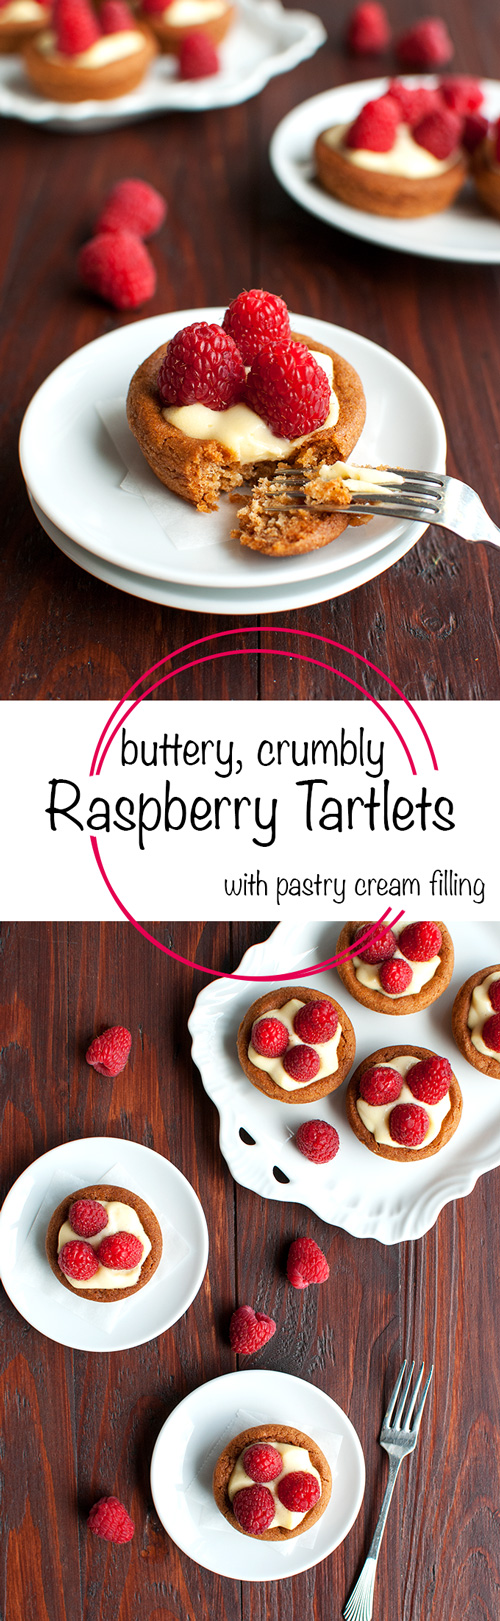 Raspberry Tartlets with Pastry Cream Filling - buttery, crumbly pastry filled with silky vanilla pastry cream and topped with fresh raspberries. Yum! | thetoughcookie.com